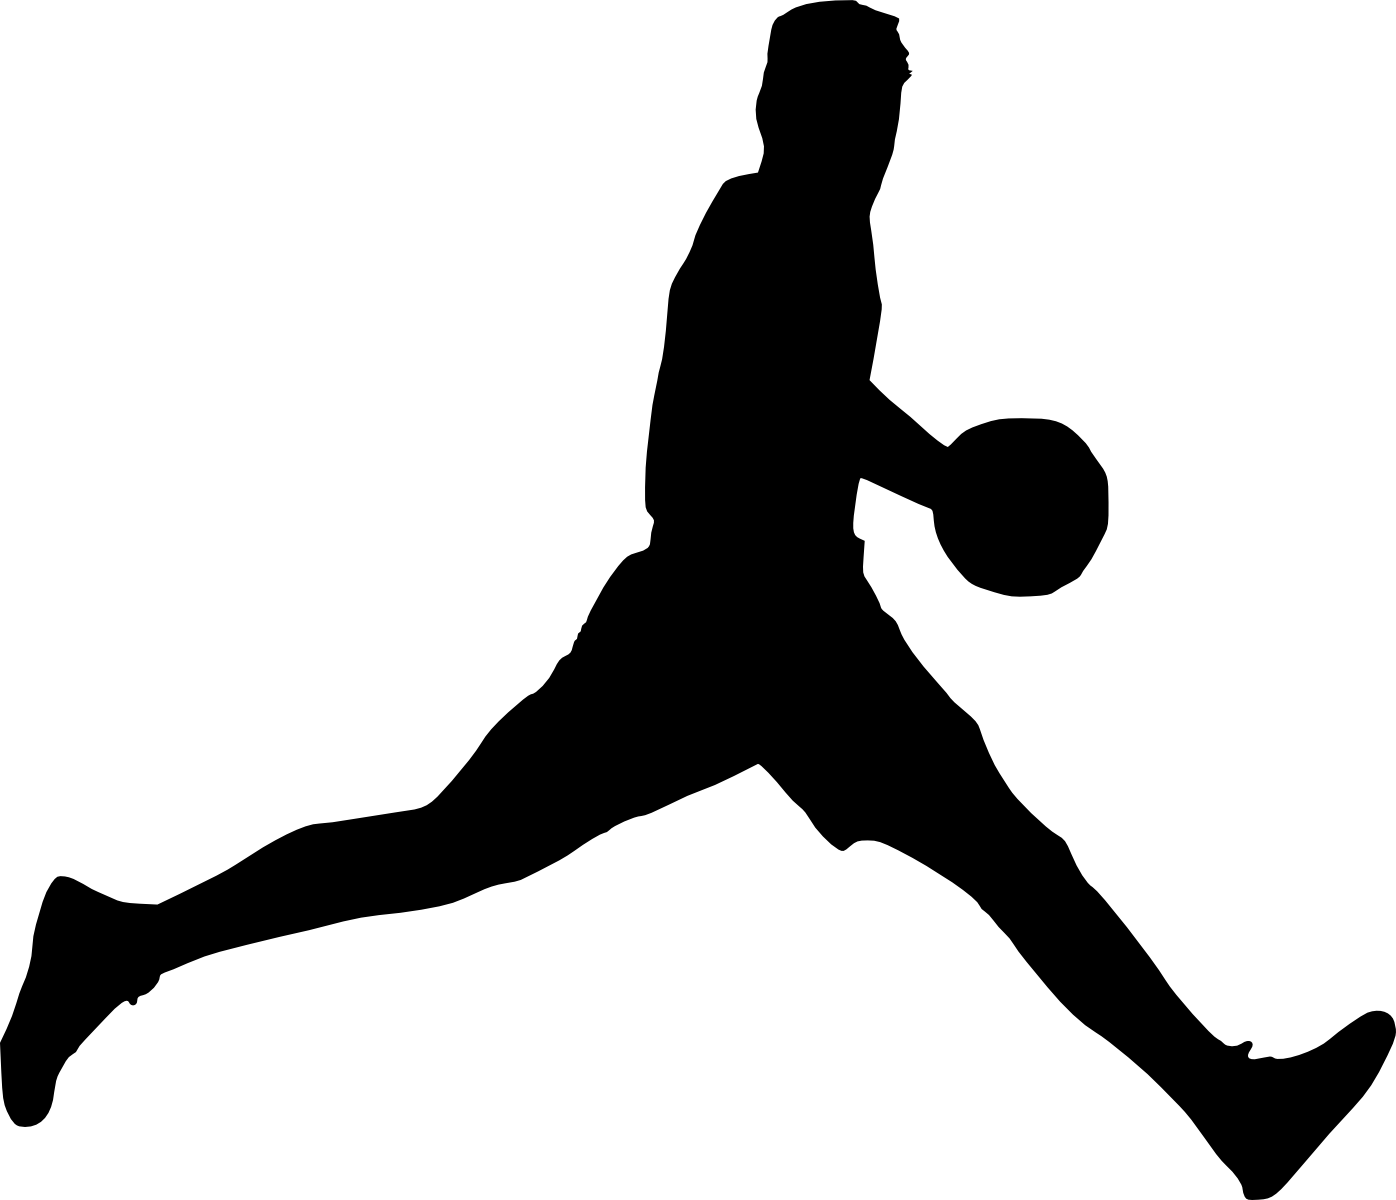 Basketball players clipart free graphic free library Silhouette Of A Basketball Player at GetDrawings.com | Free for ... graphic free library